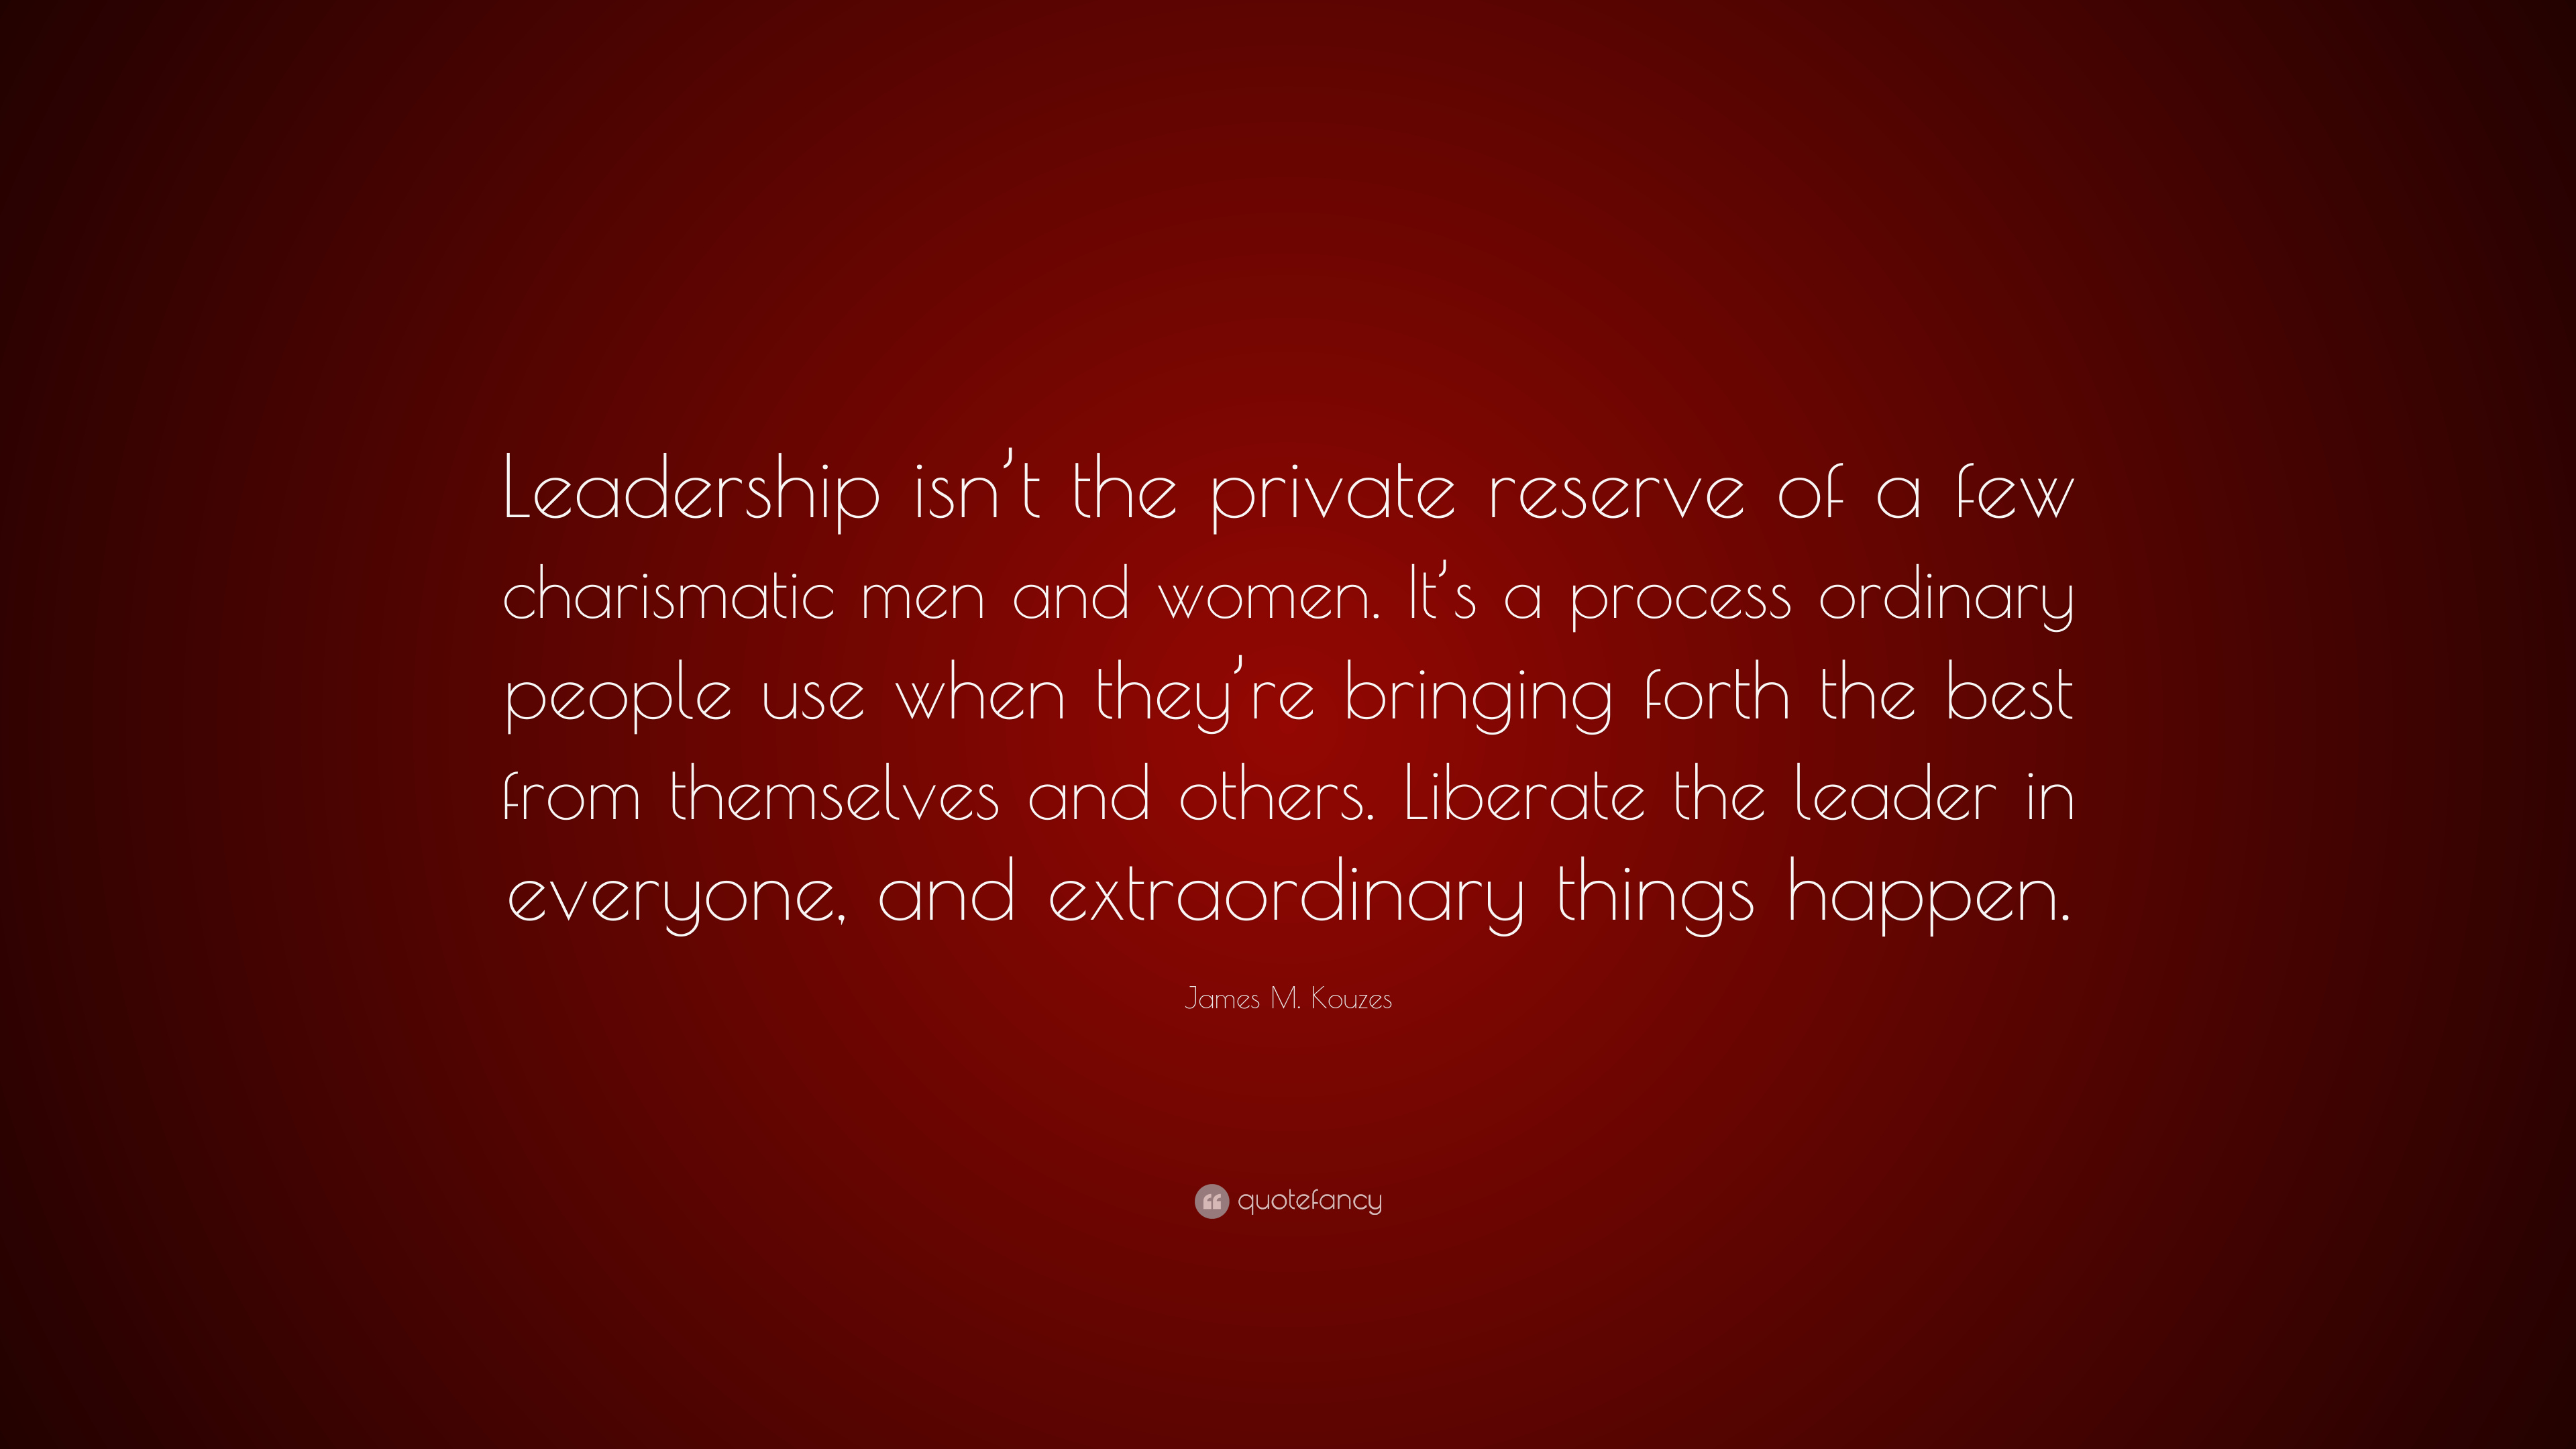 """People Who Use Others Quotes: James M. Kouzes Quote: """"Leadership Isn't The Private"""